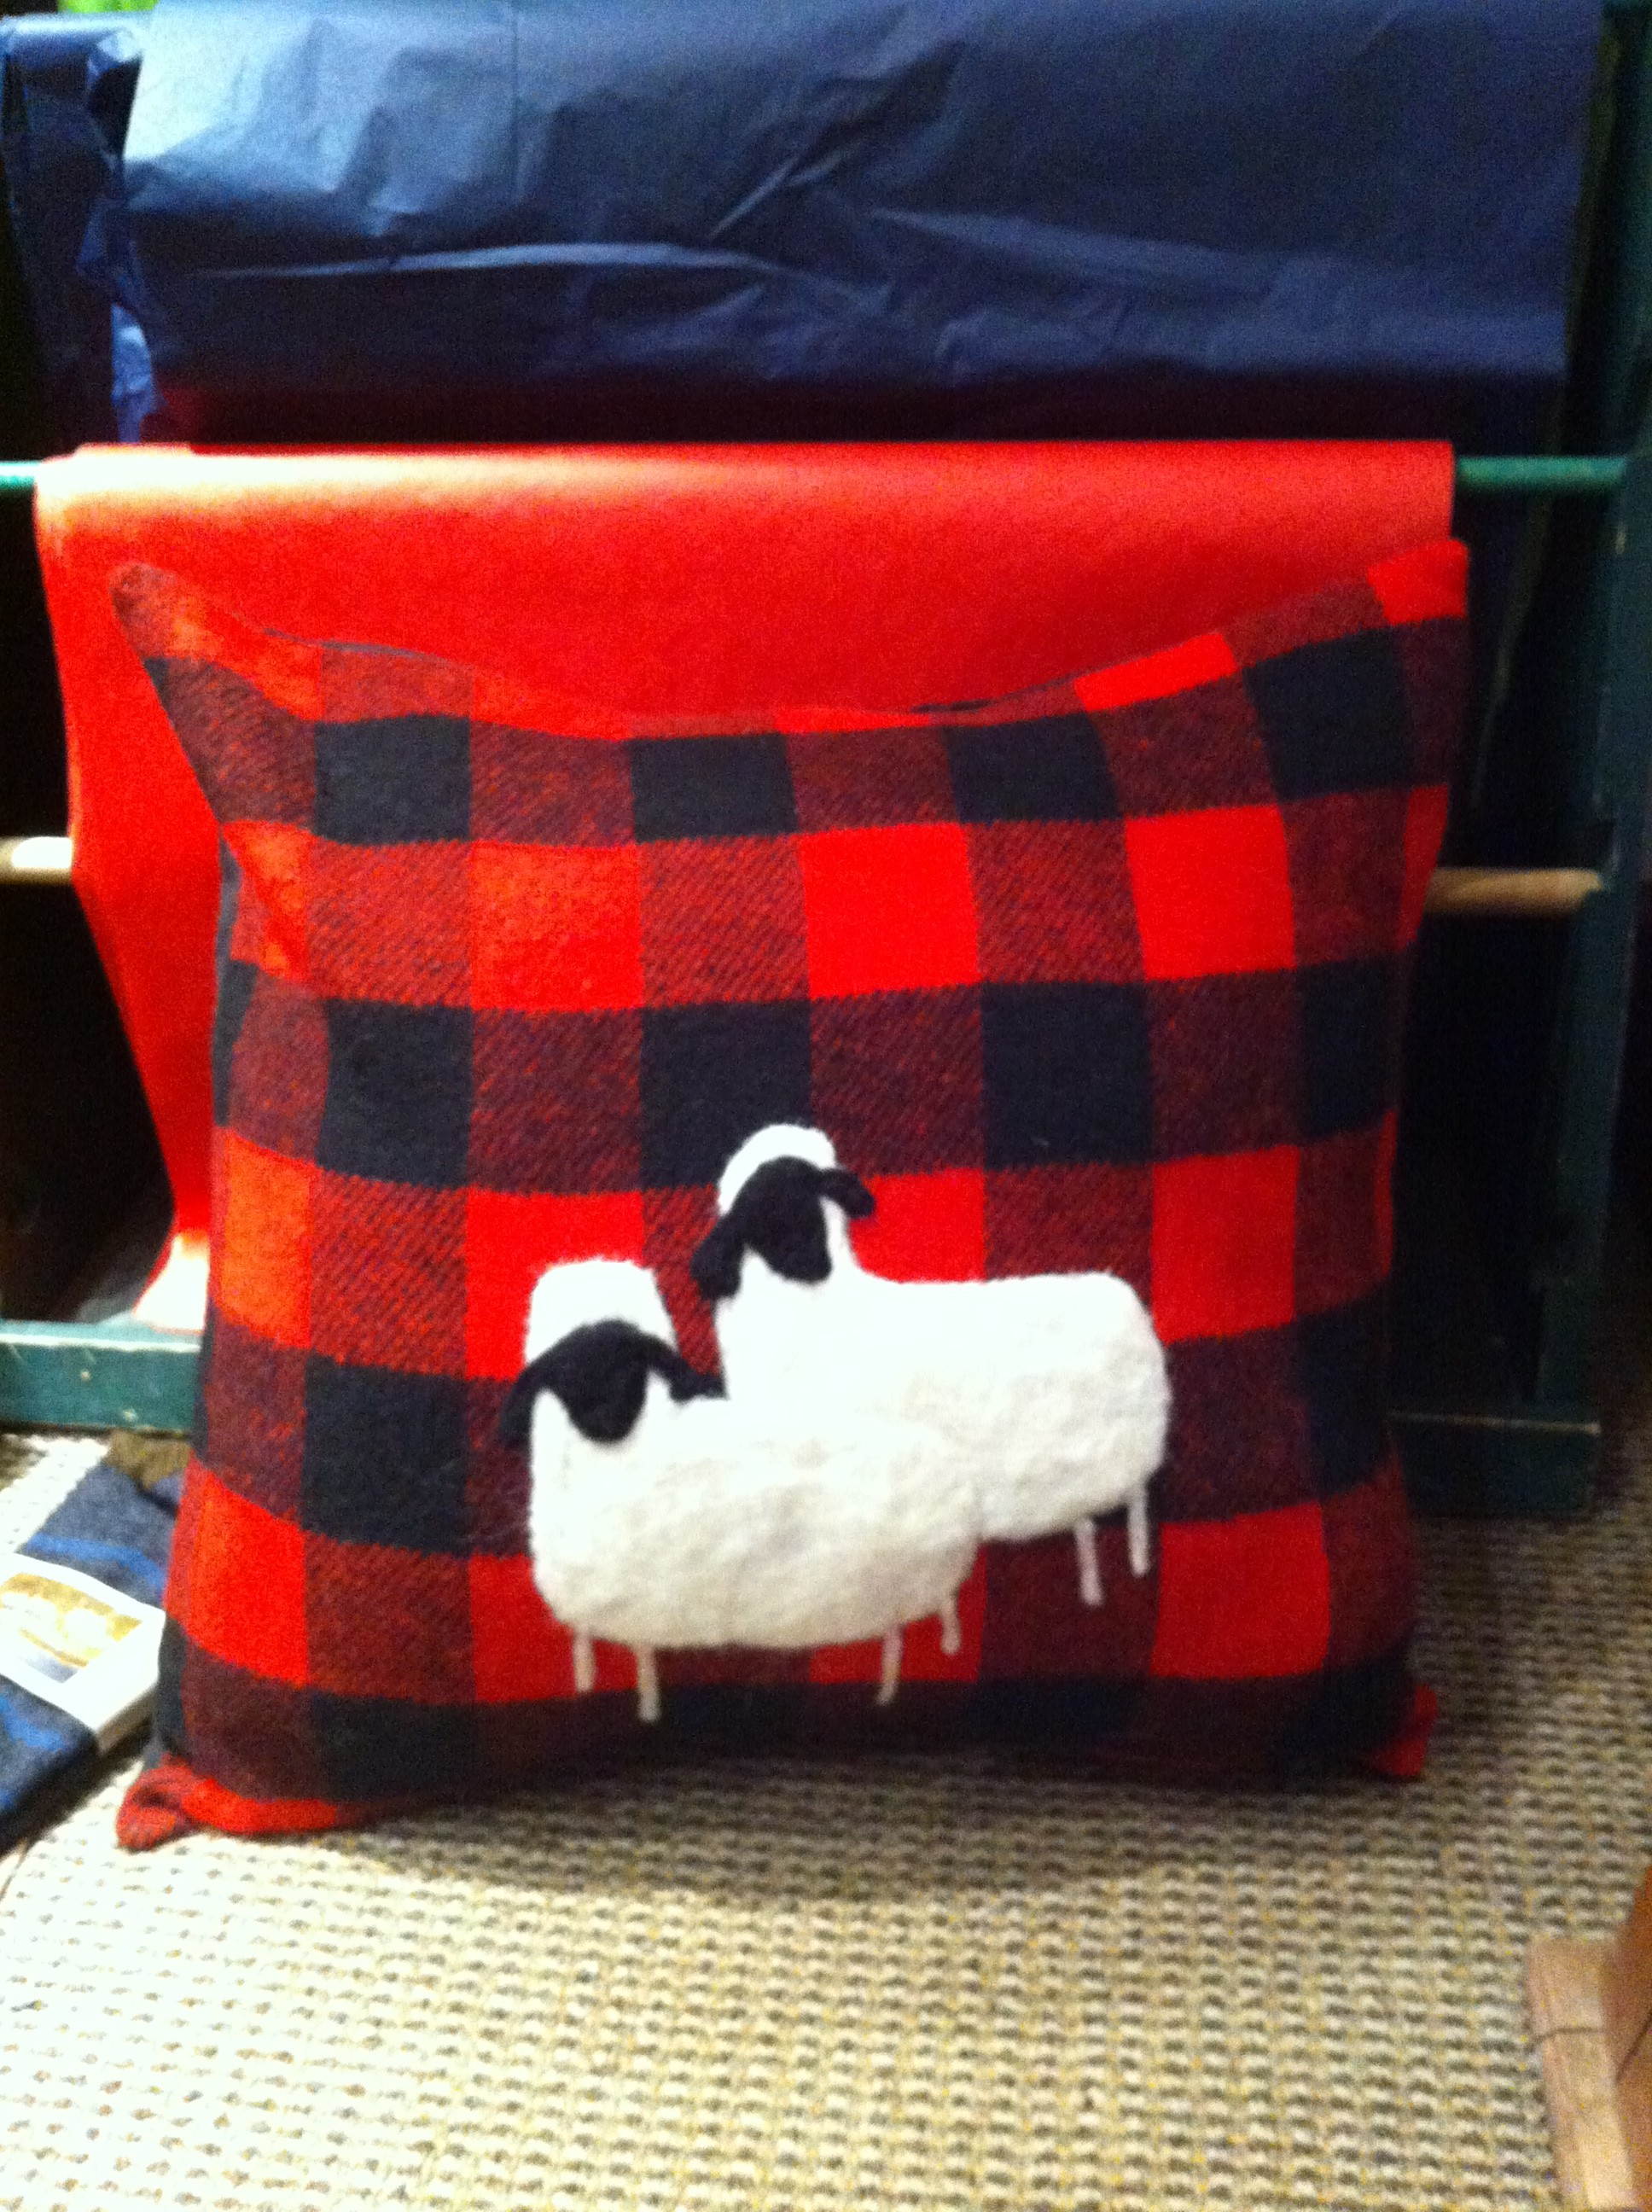 Red plaid pillow with two lambs embroidered on it